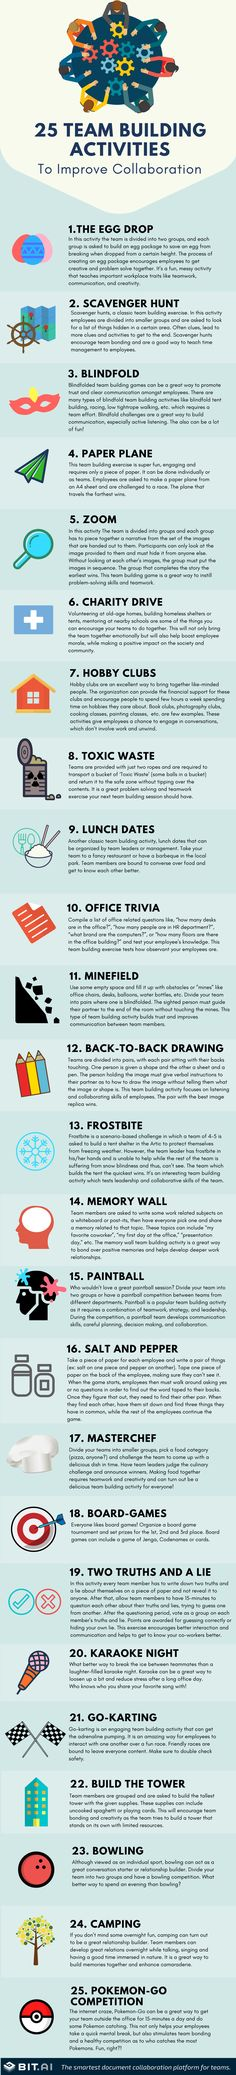 25 Team Building Activities That Your Team Will Love To Play - Nele Classroom Team Building Activities, Team Building Games, Activities For Boys, Group Activities, Team Games, Teamwork Games, Weekend Activities, Building Ideas, Scouts